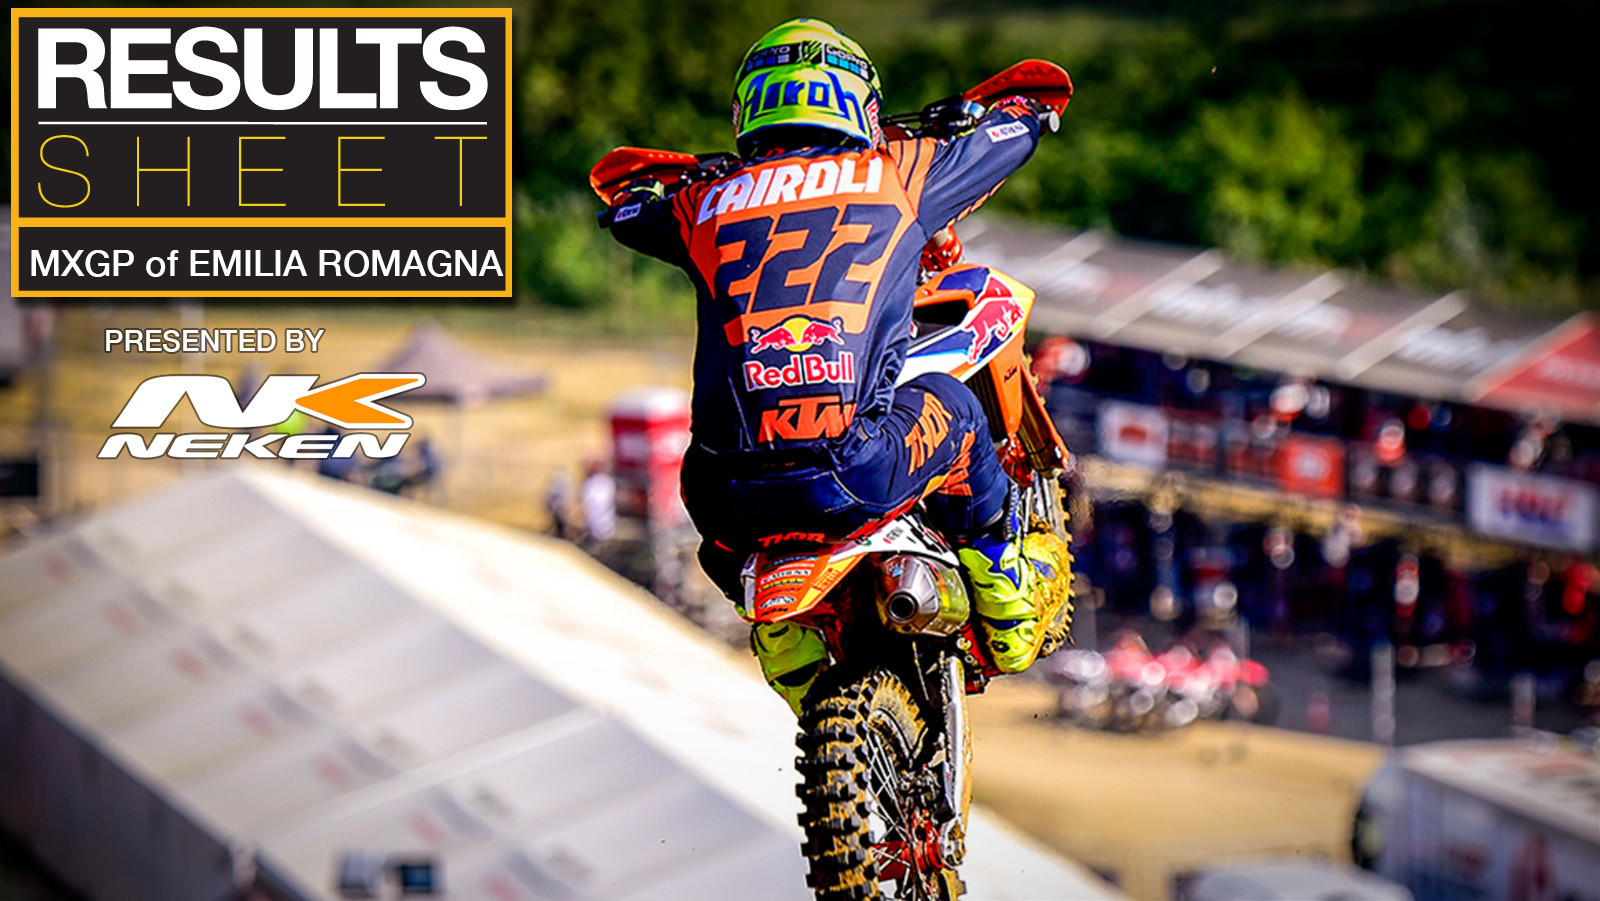 Results Sheet: 2020 MXGP of Emilia Romagna